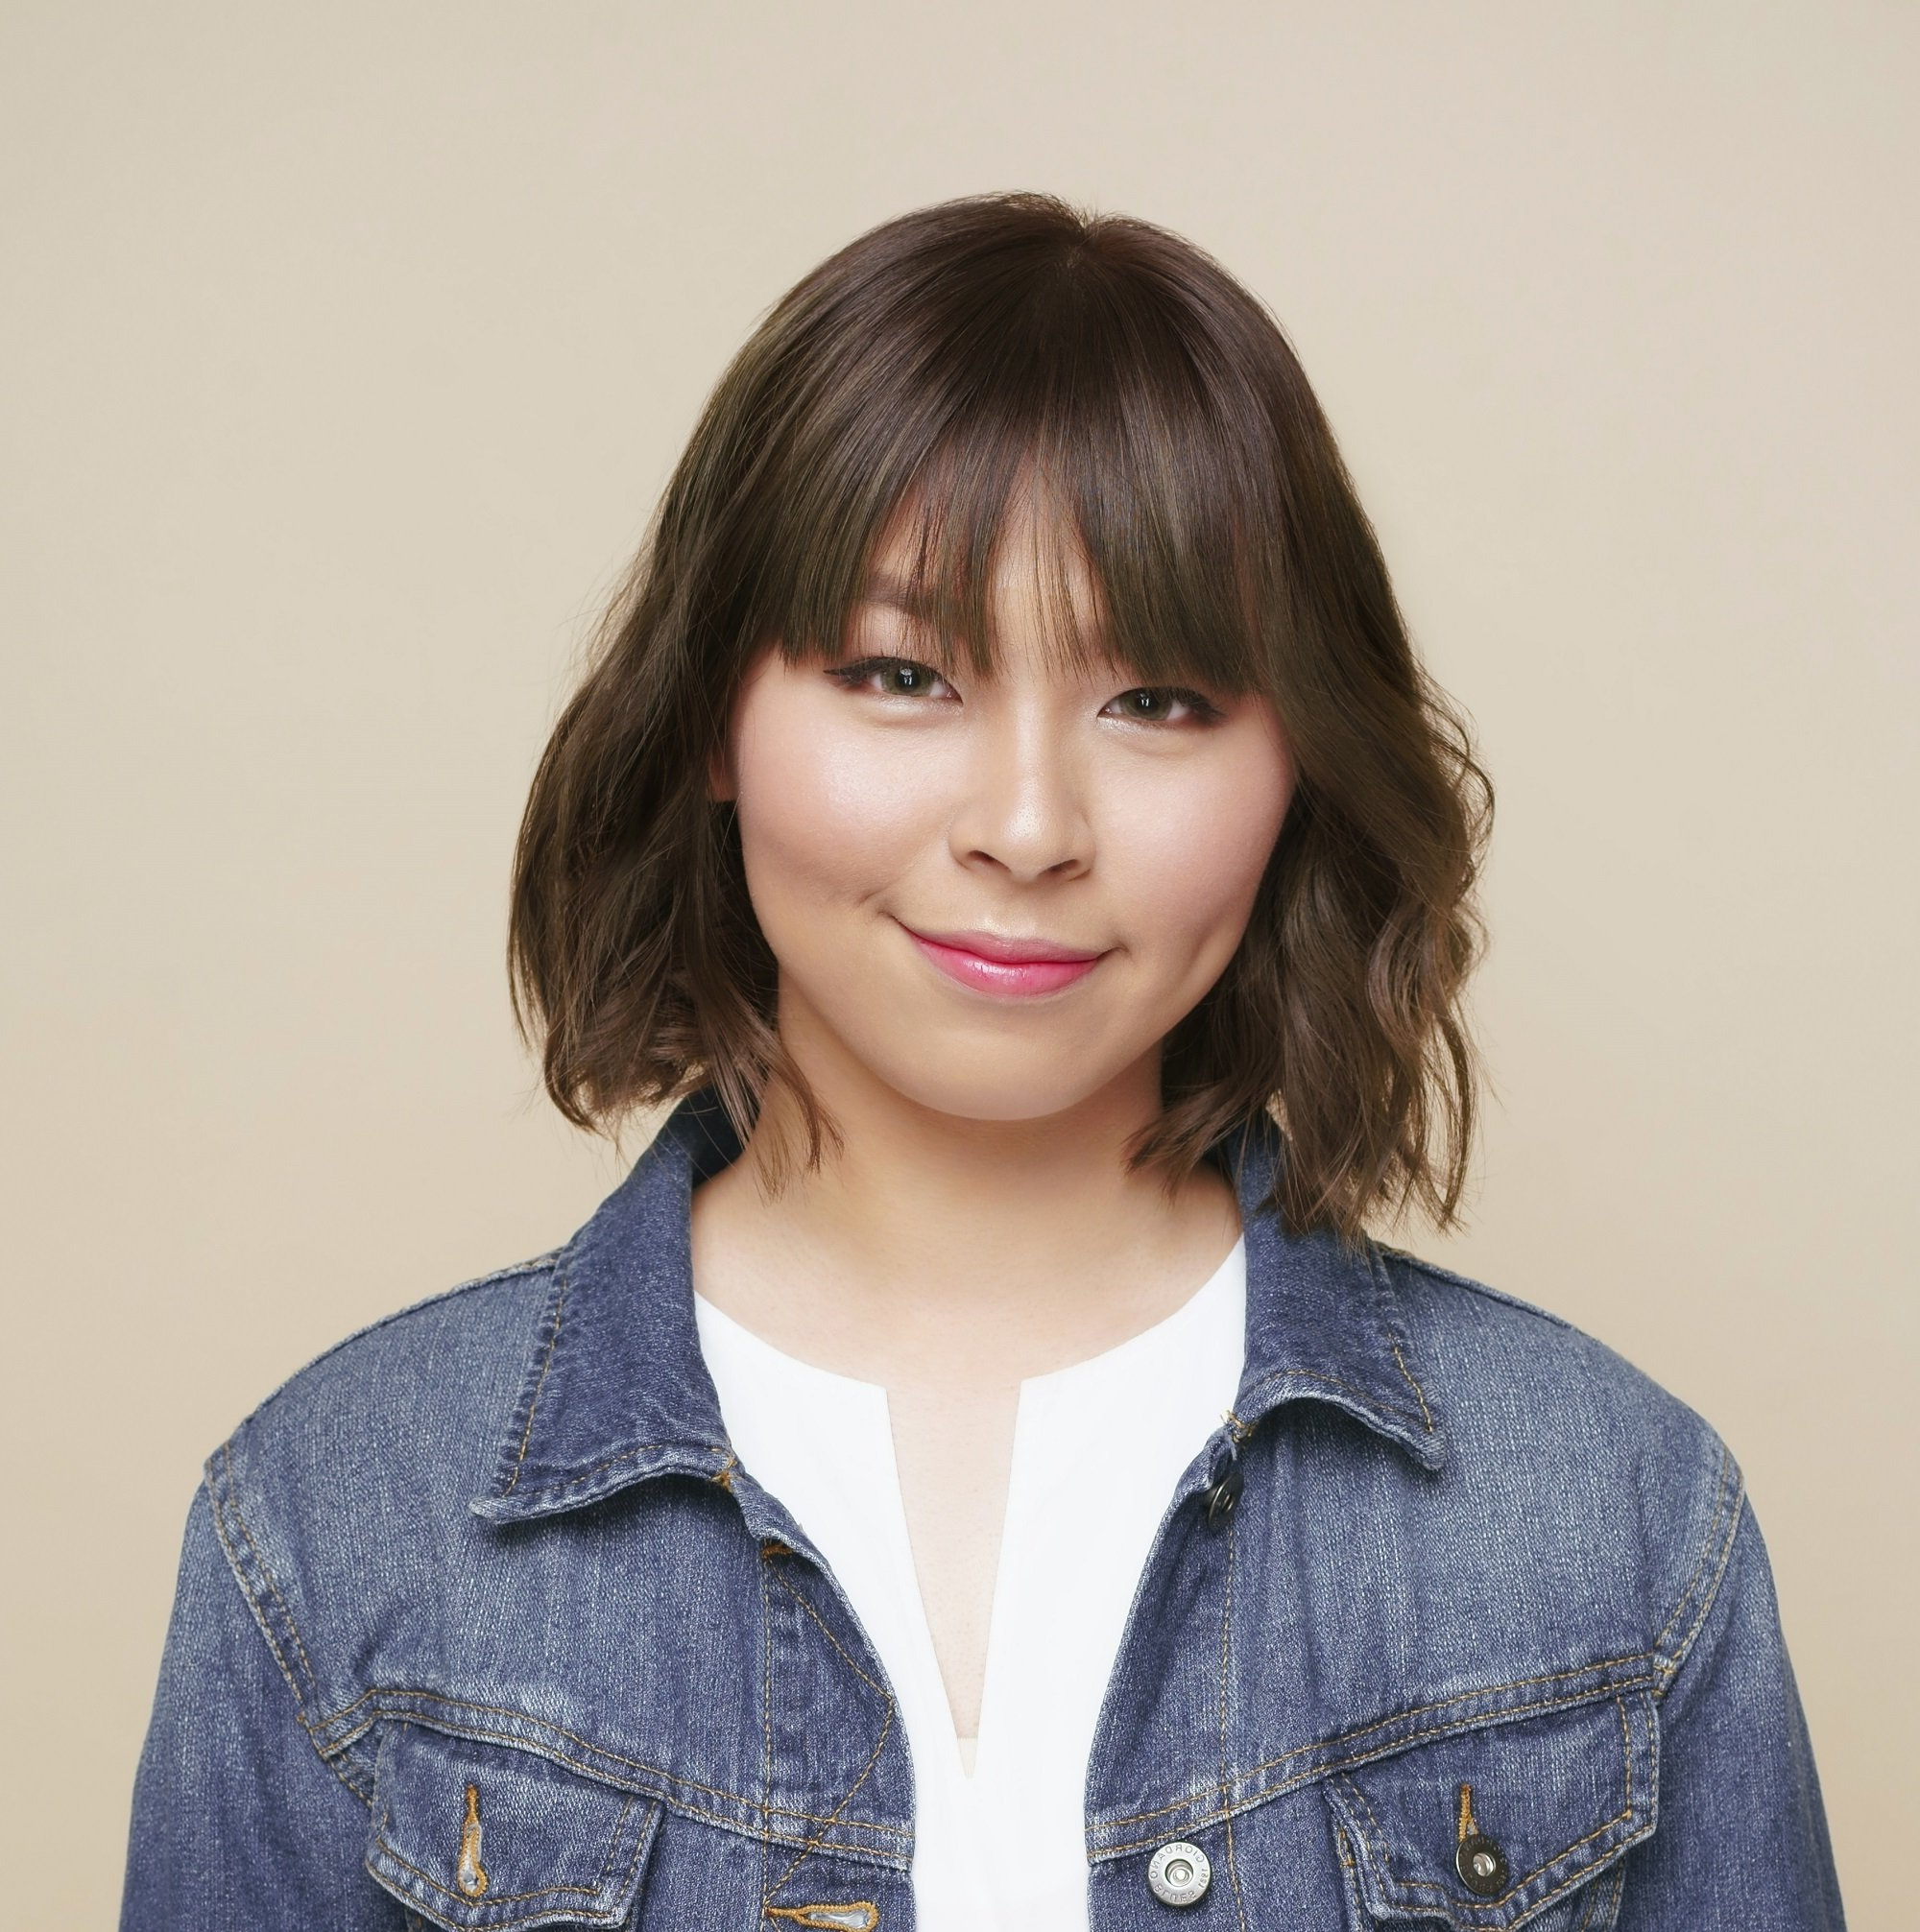 Short Hair For Round Face: Chic Ideas You Need To Try With Layered Short Hairstyles For Round Faces (View 10 of 20)